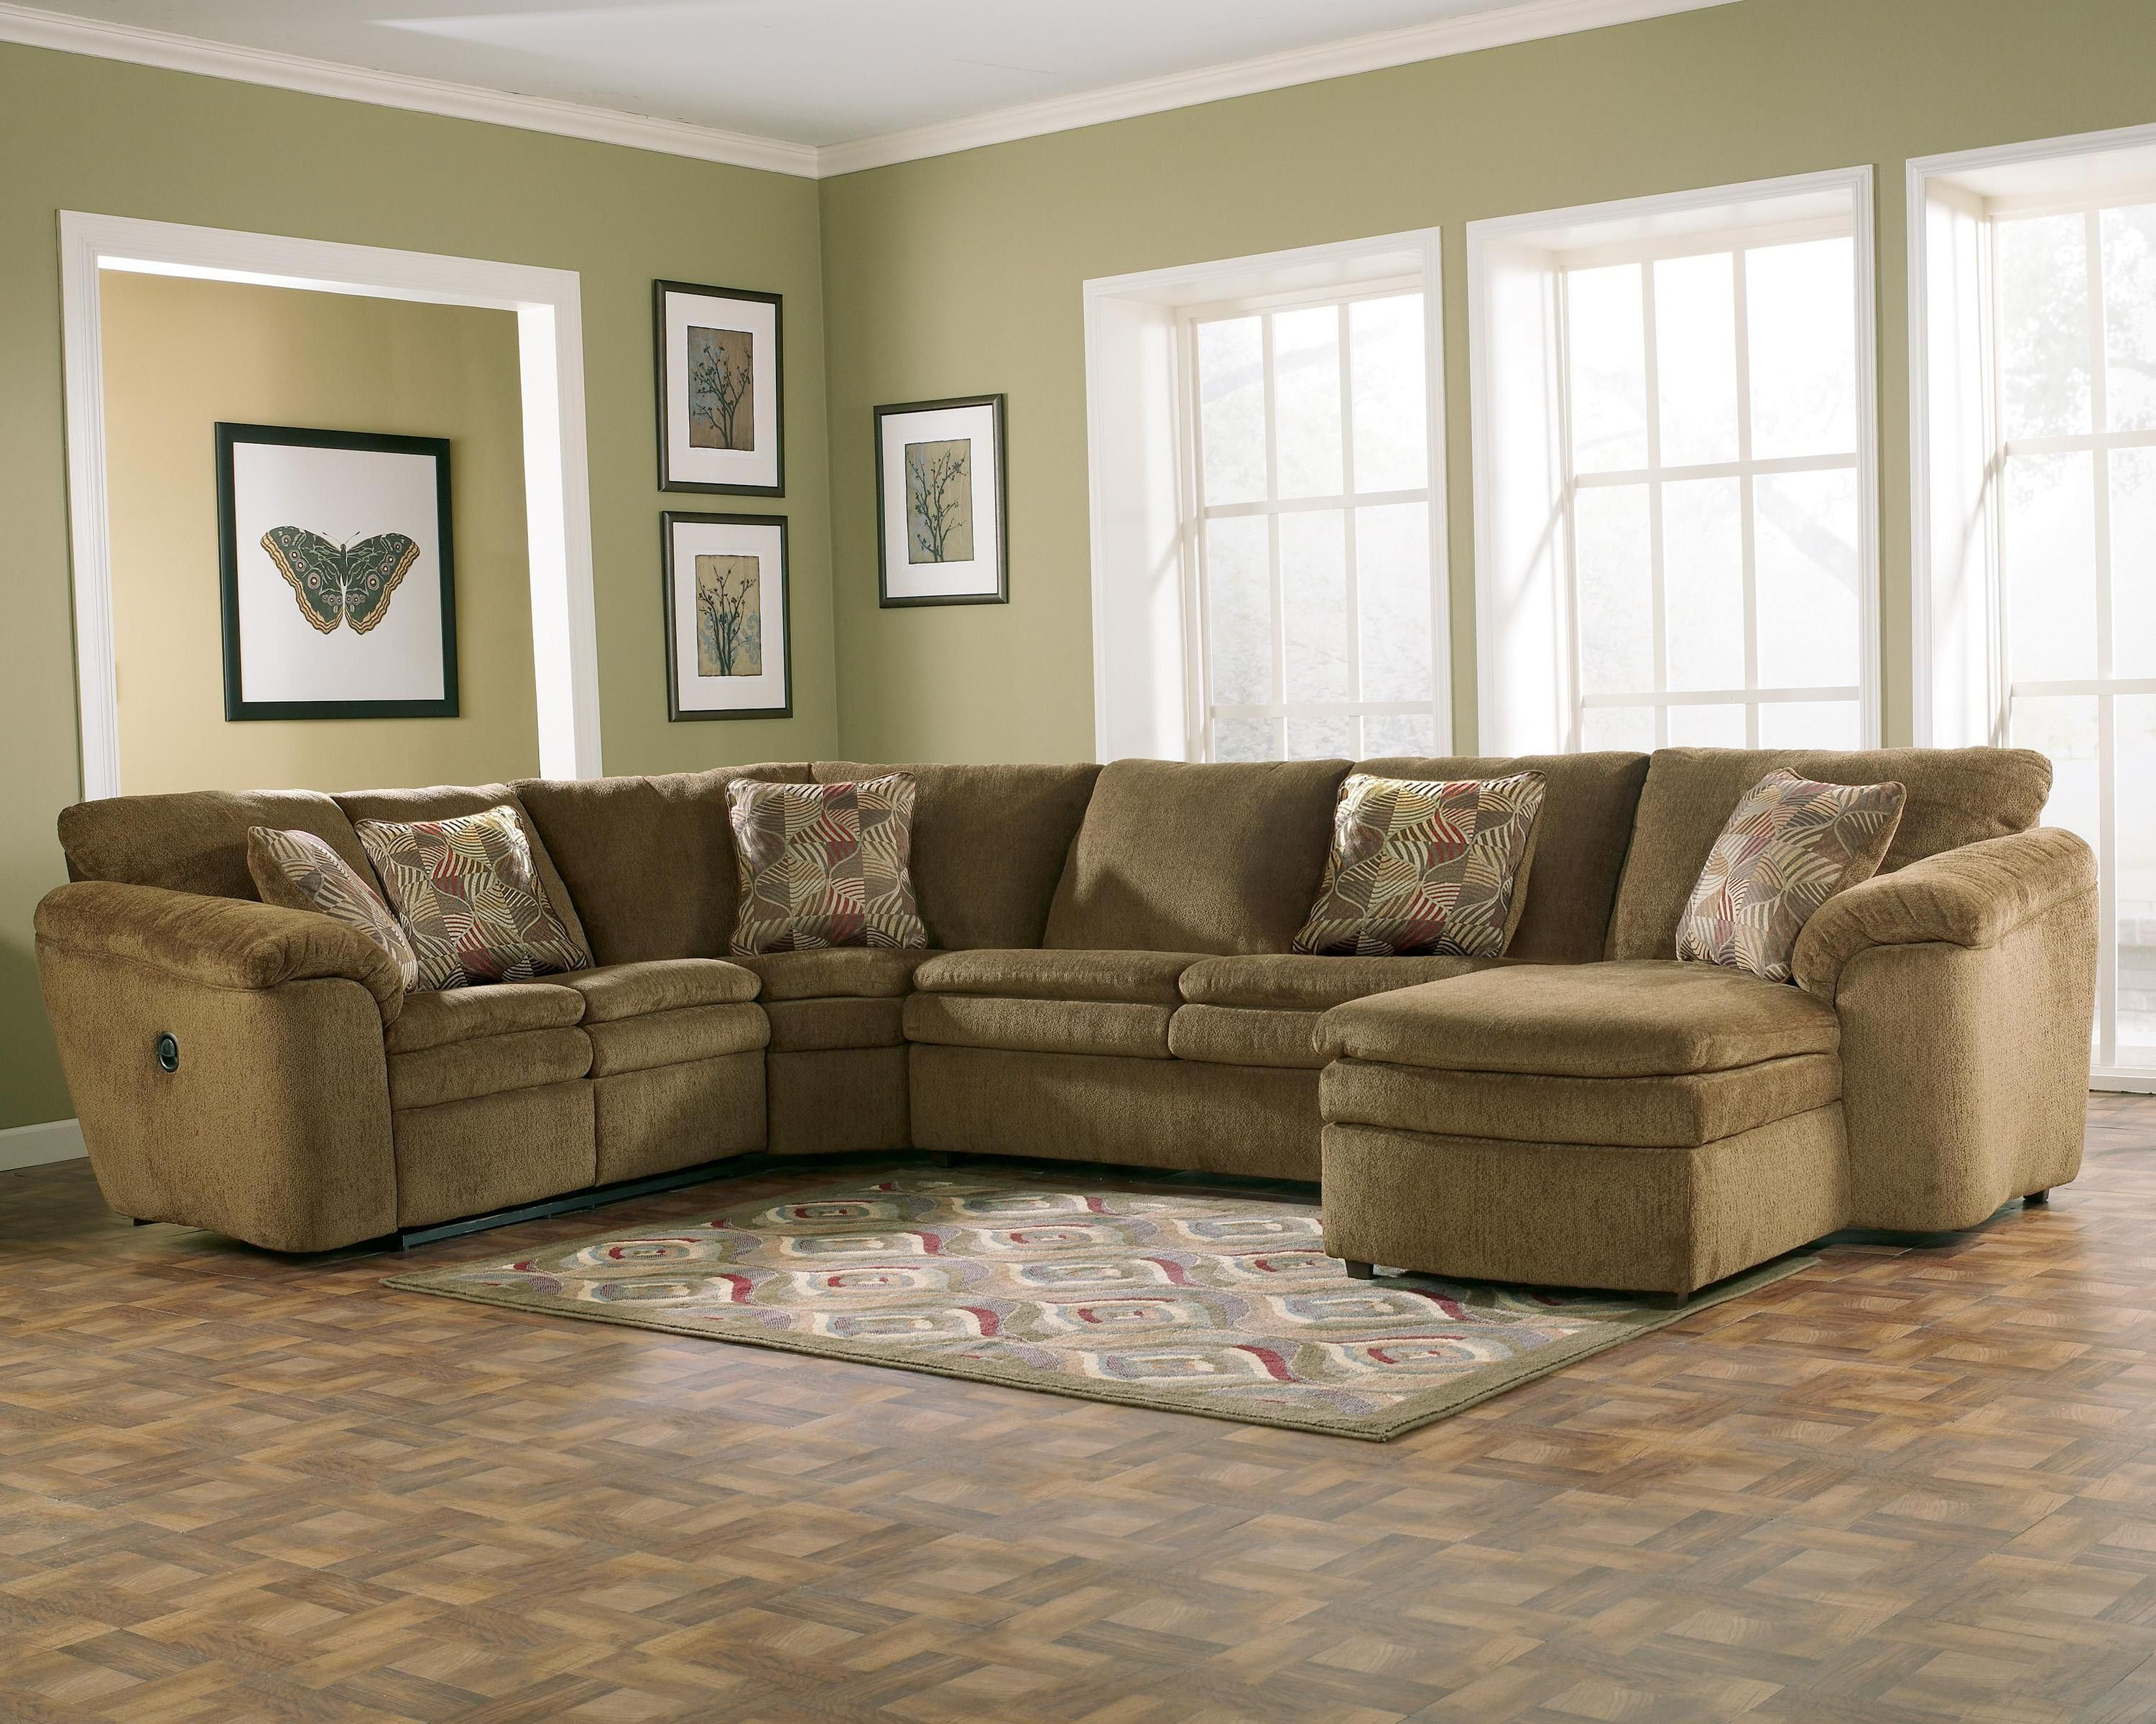 Rebel Mocha Sofa Sectional Group with Left Recliner and Right